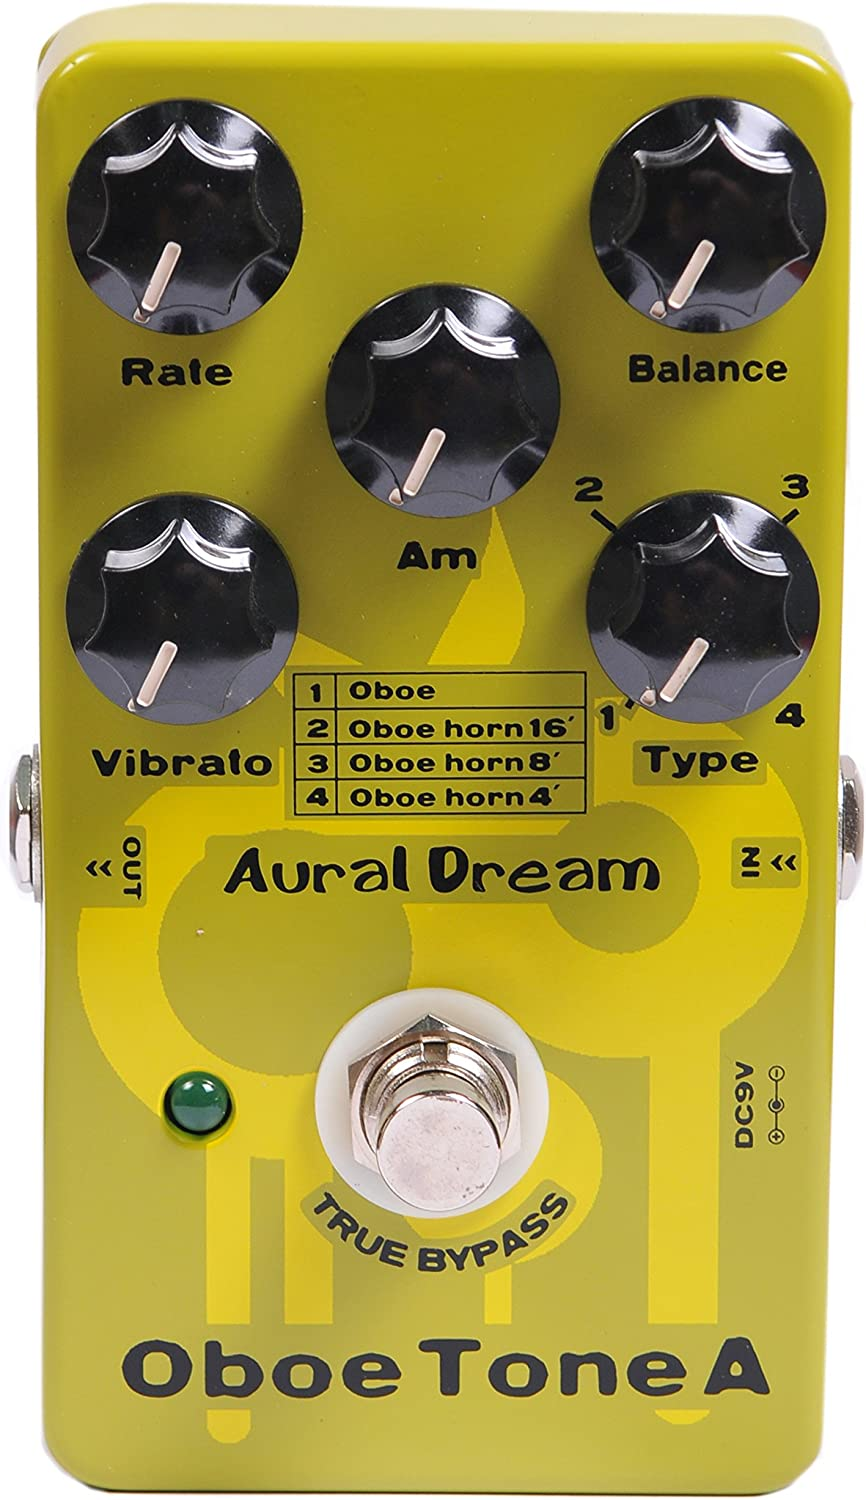 Aural Dream Oboe Tone A Synthesizer Guitar Effects Pedal based on organ including Oboe,Oboe horn 16',Oboe horn 8'and Oboe horn 4'with vibrato module control.